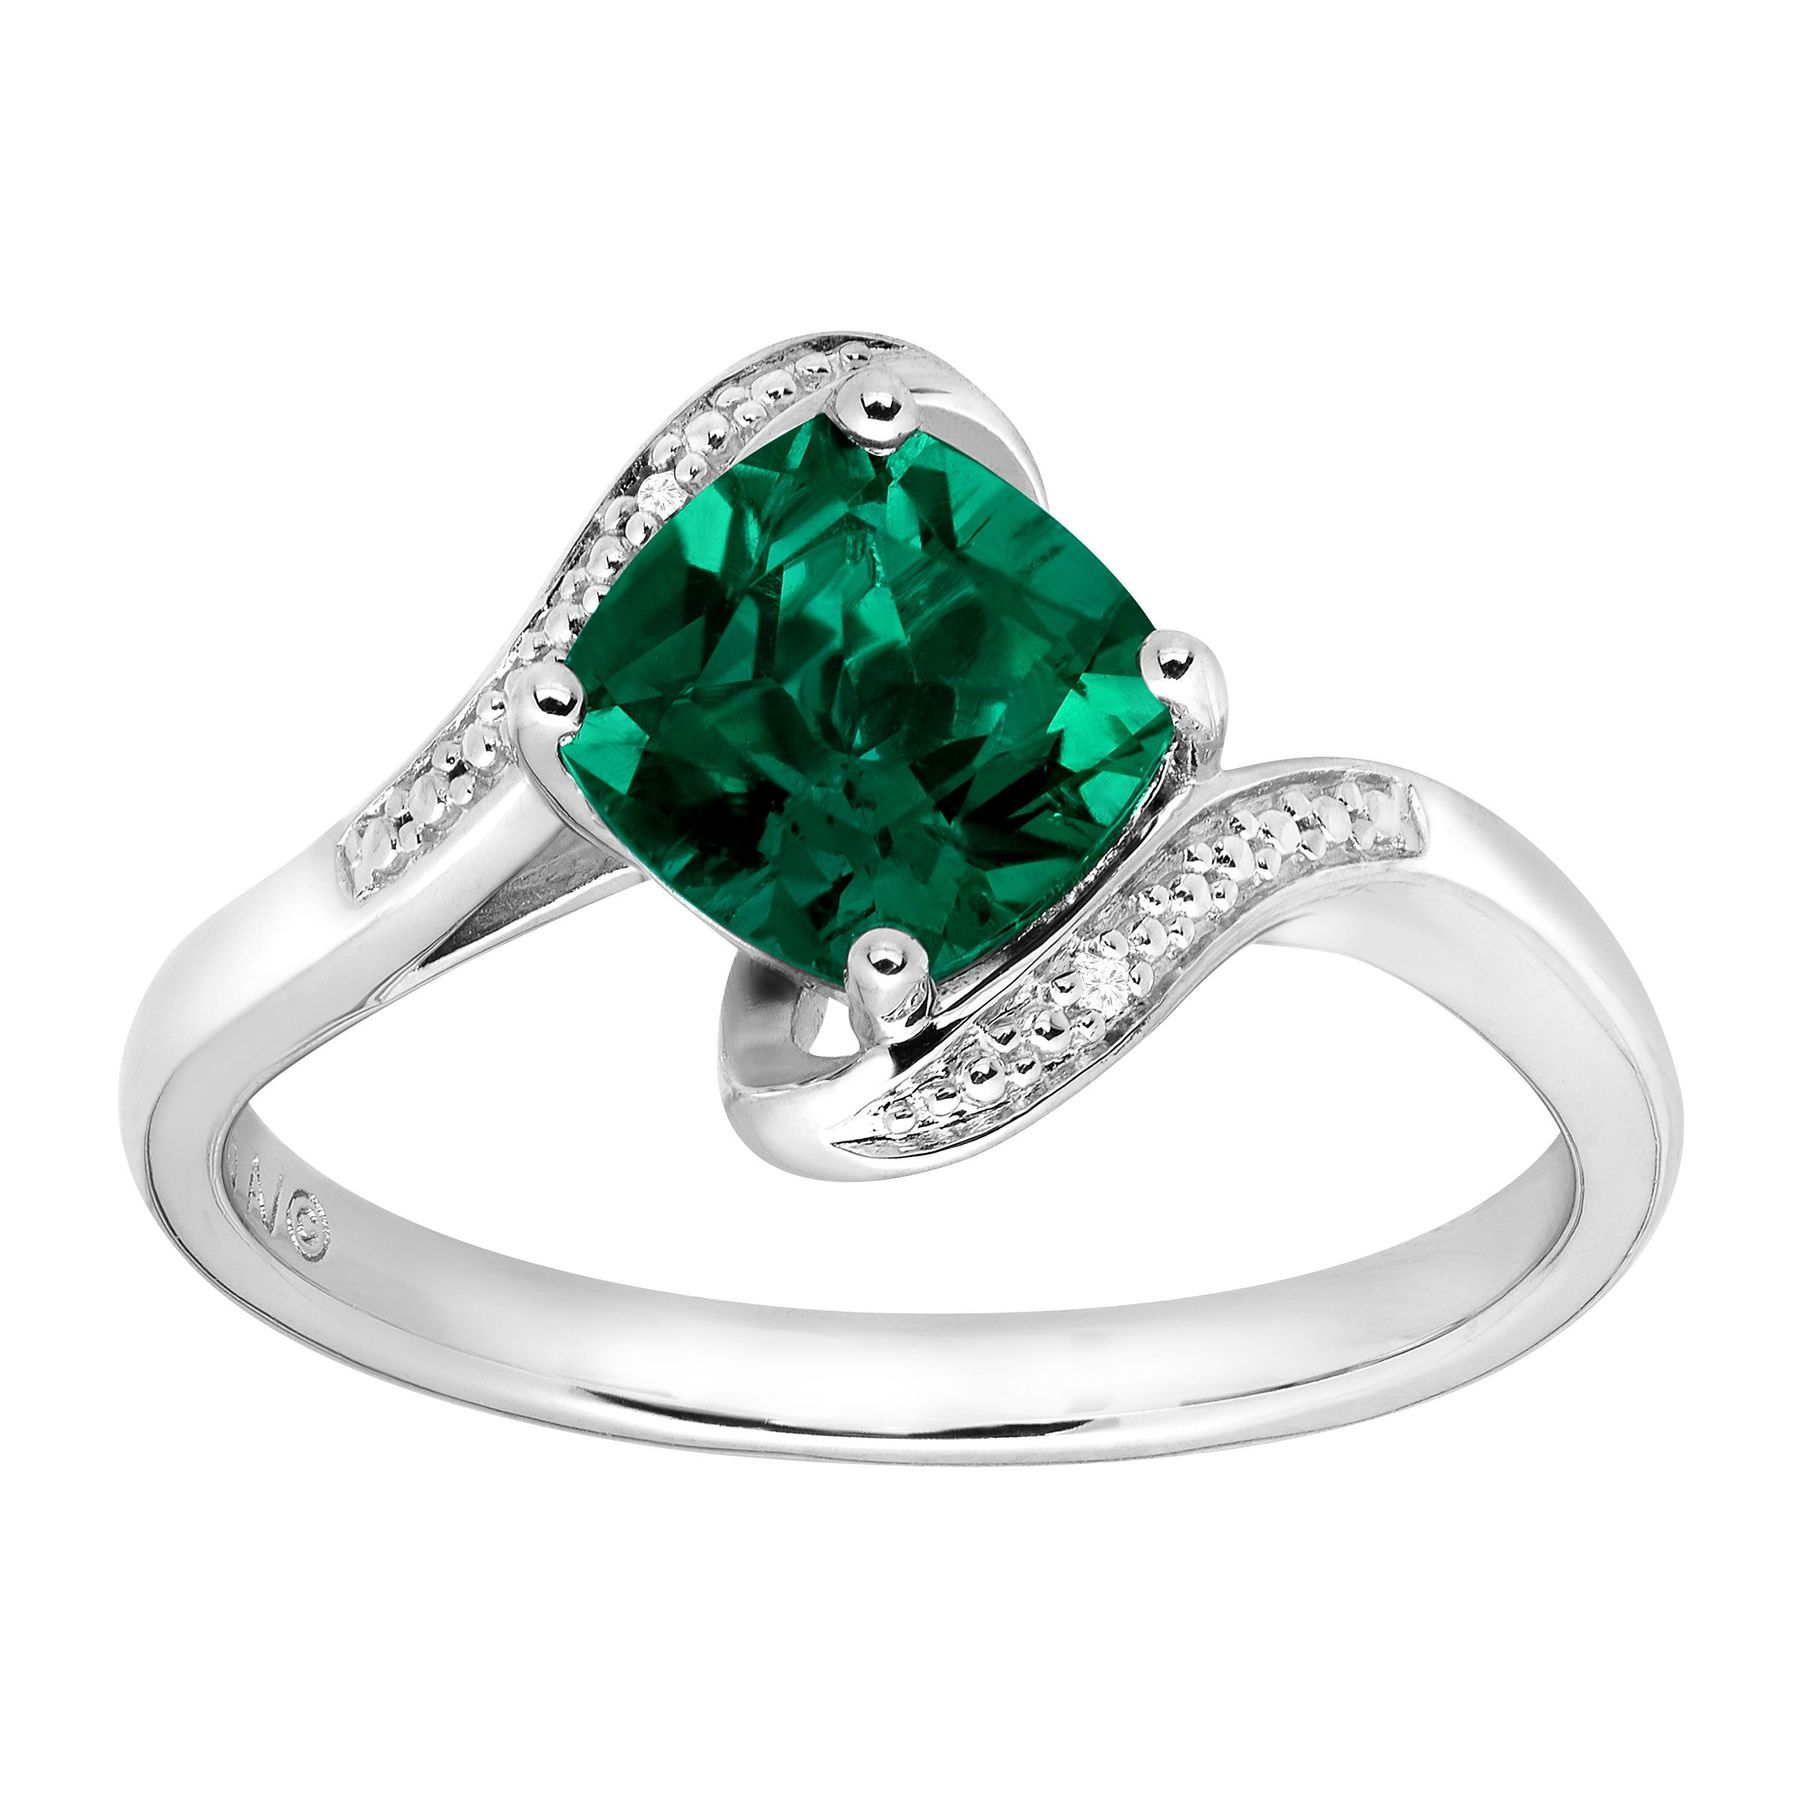 jewelry stones angelina az cut jolie ring engagement jy side wedding silver baguette cz emerald bling inspired